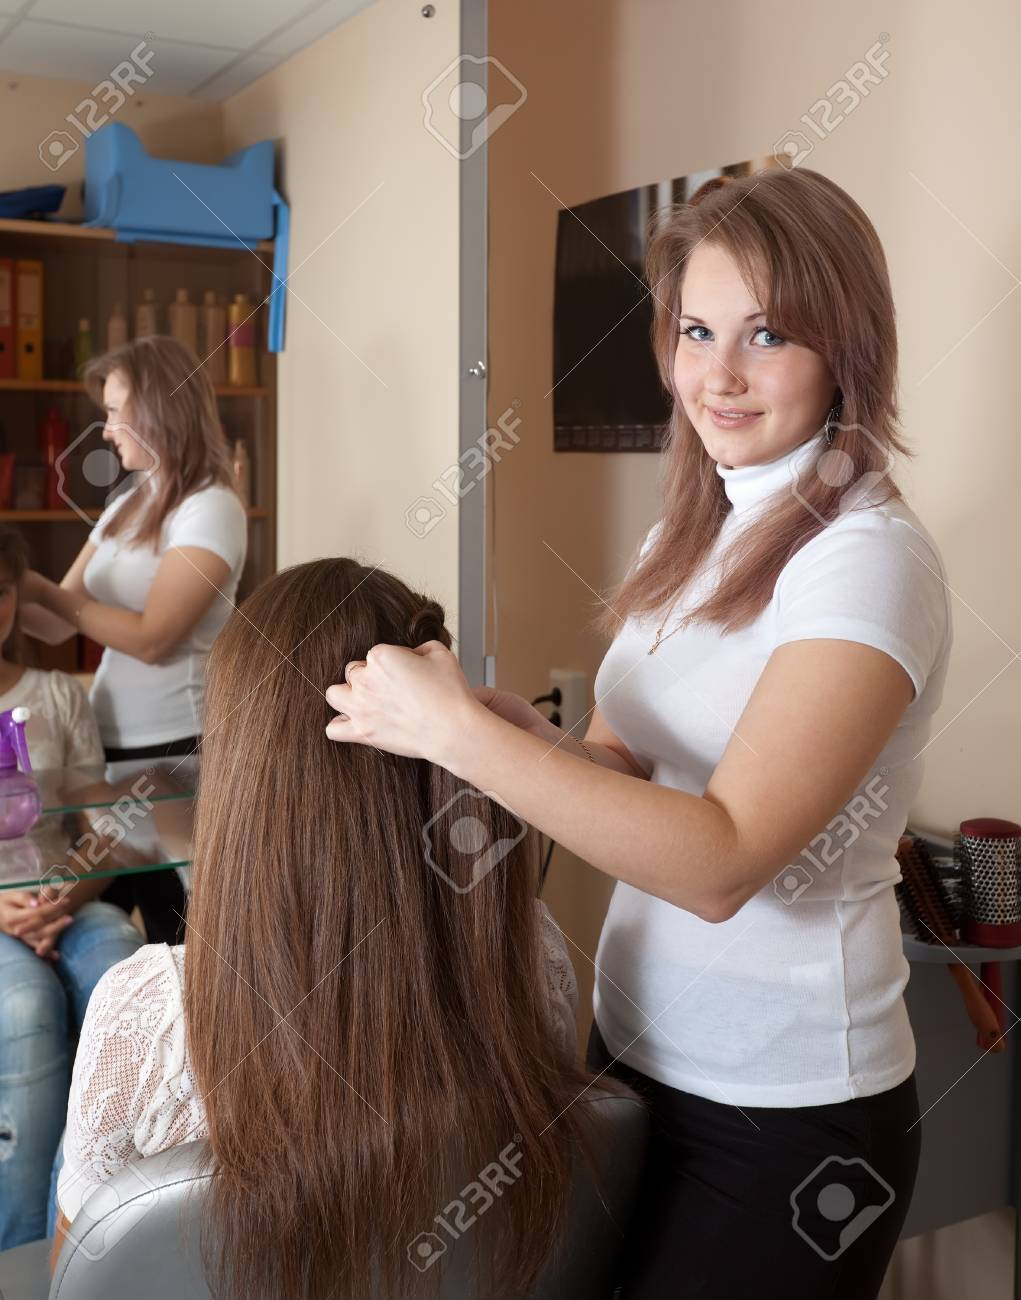 Female hairdresser works on woman hair in salon Stock Photo - 18872416